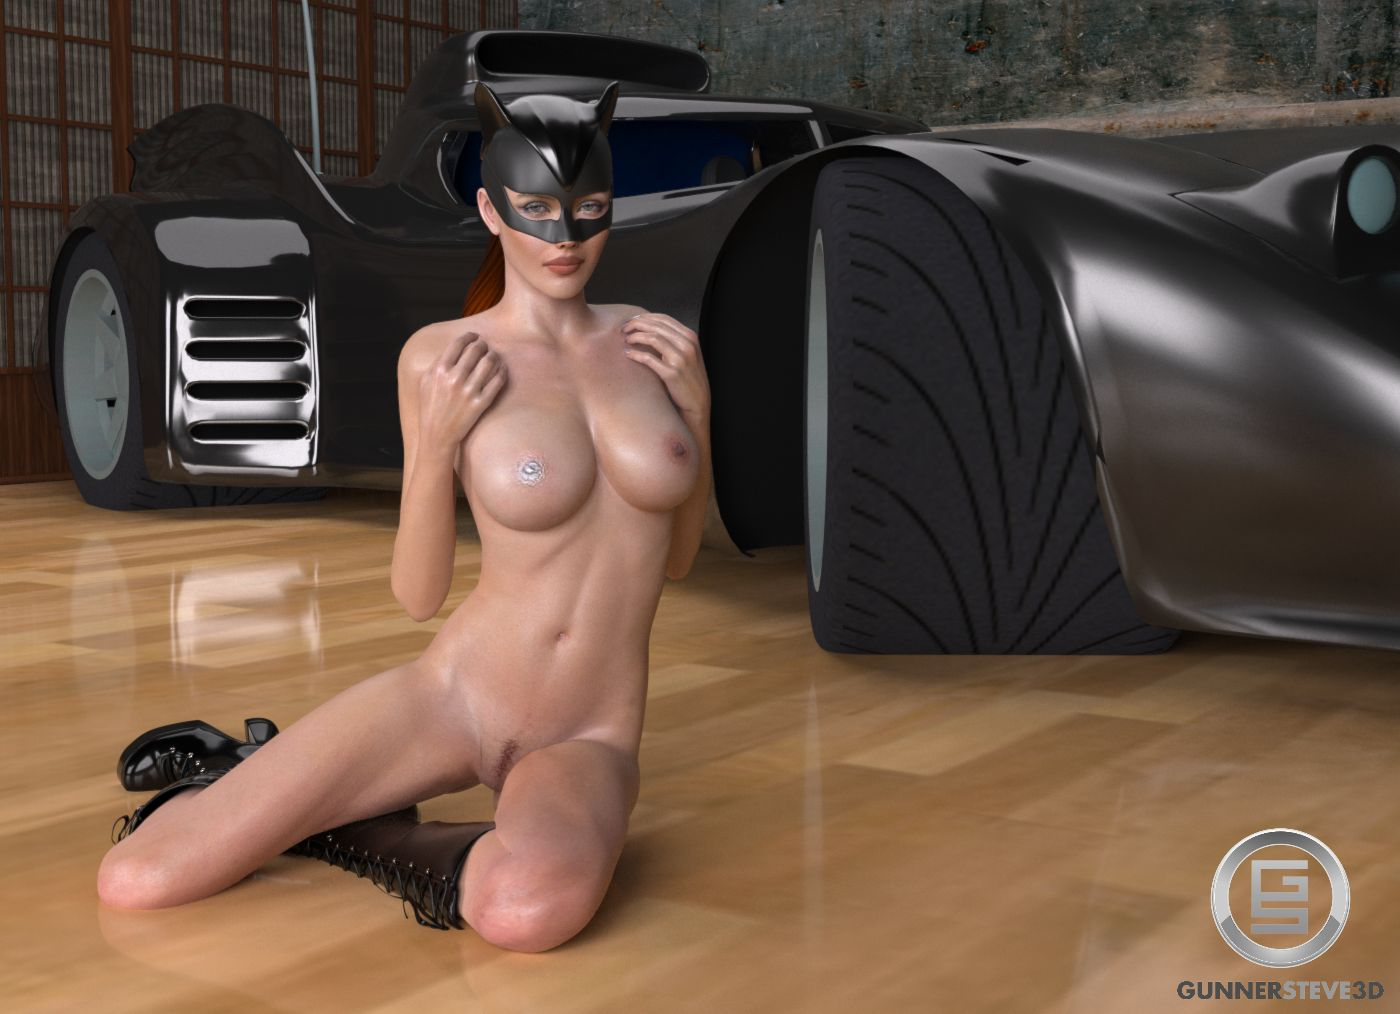 Catwoman nude sex 3d pics sexy photo